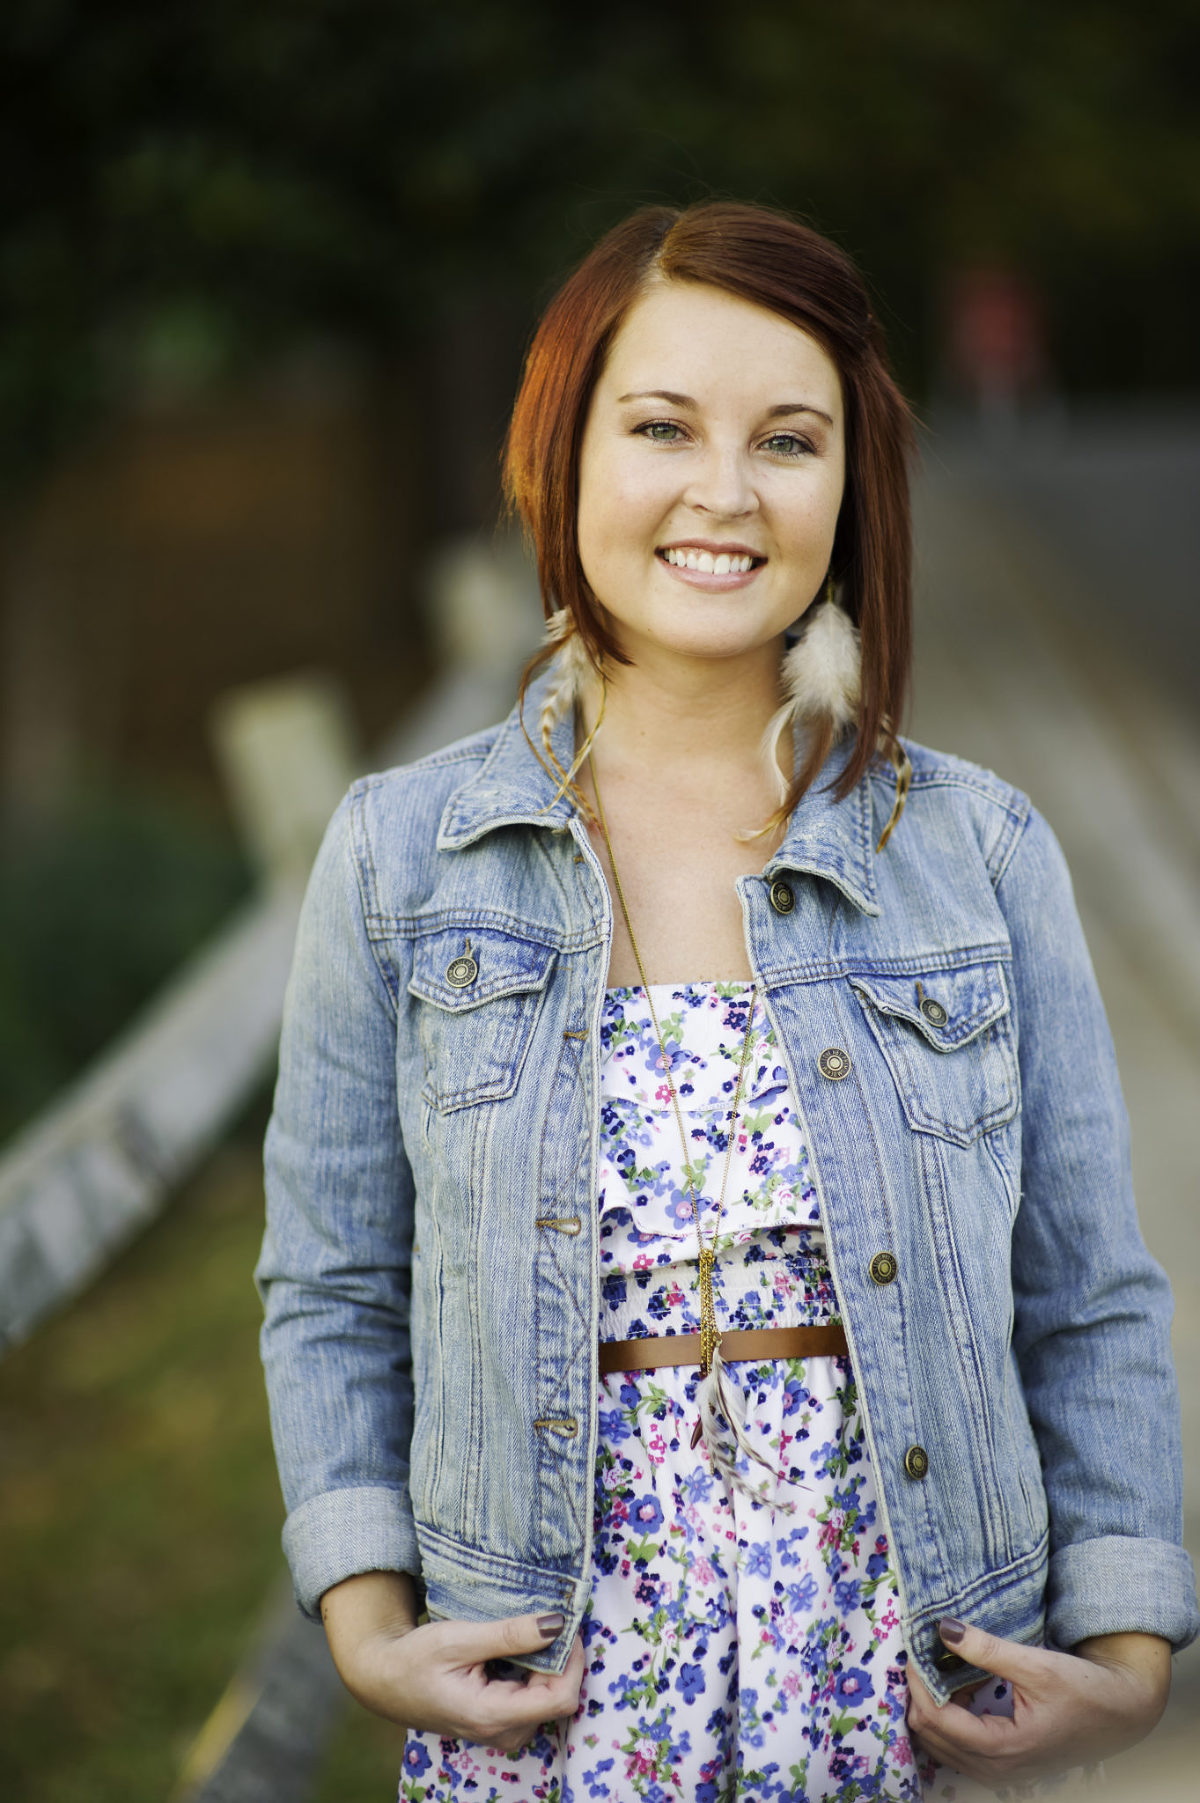 Young woman with read hair wearing a blue jean jacket